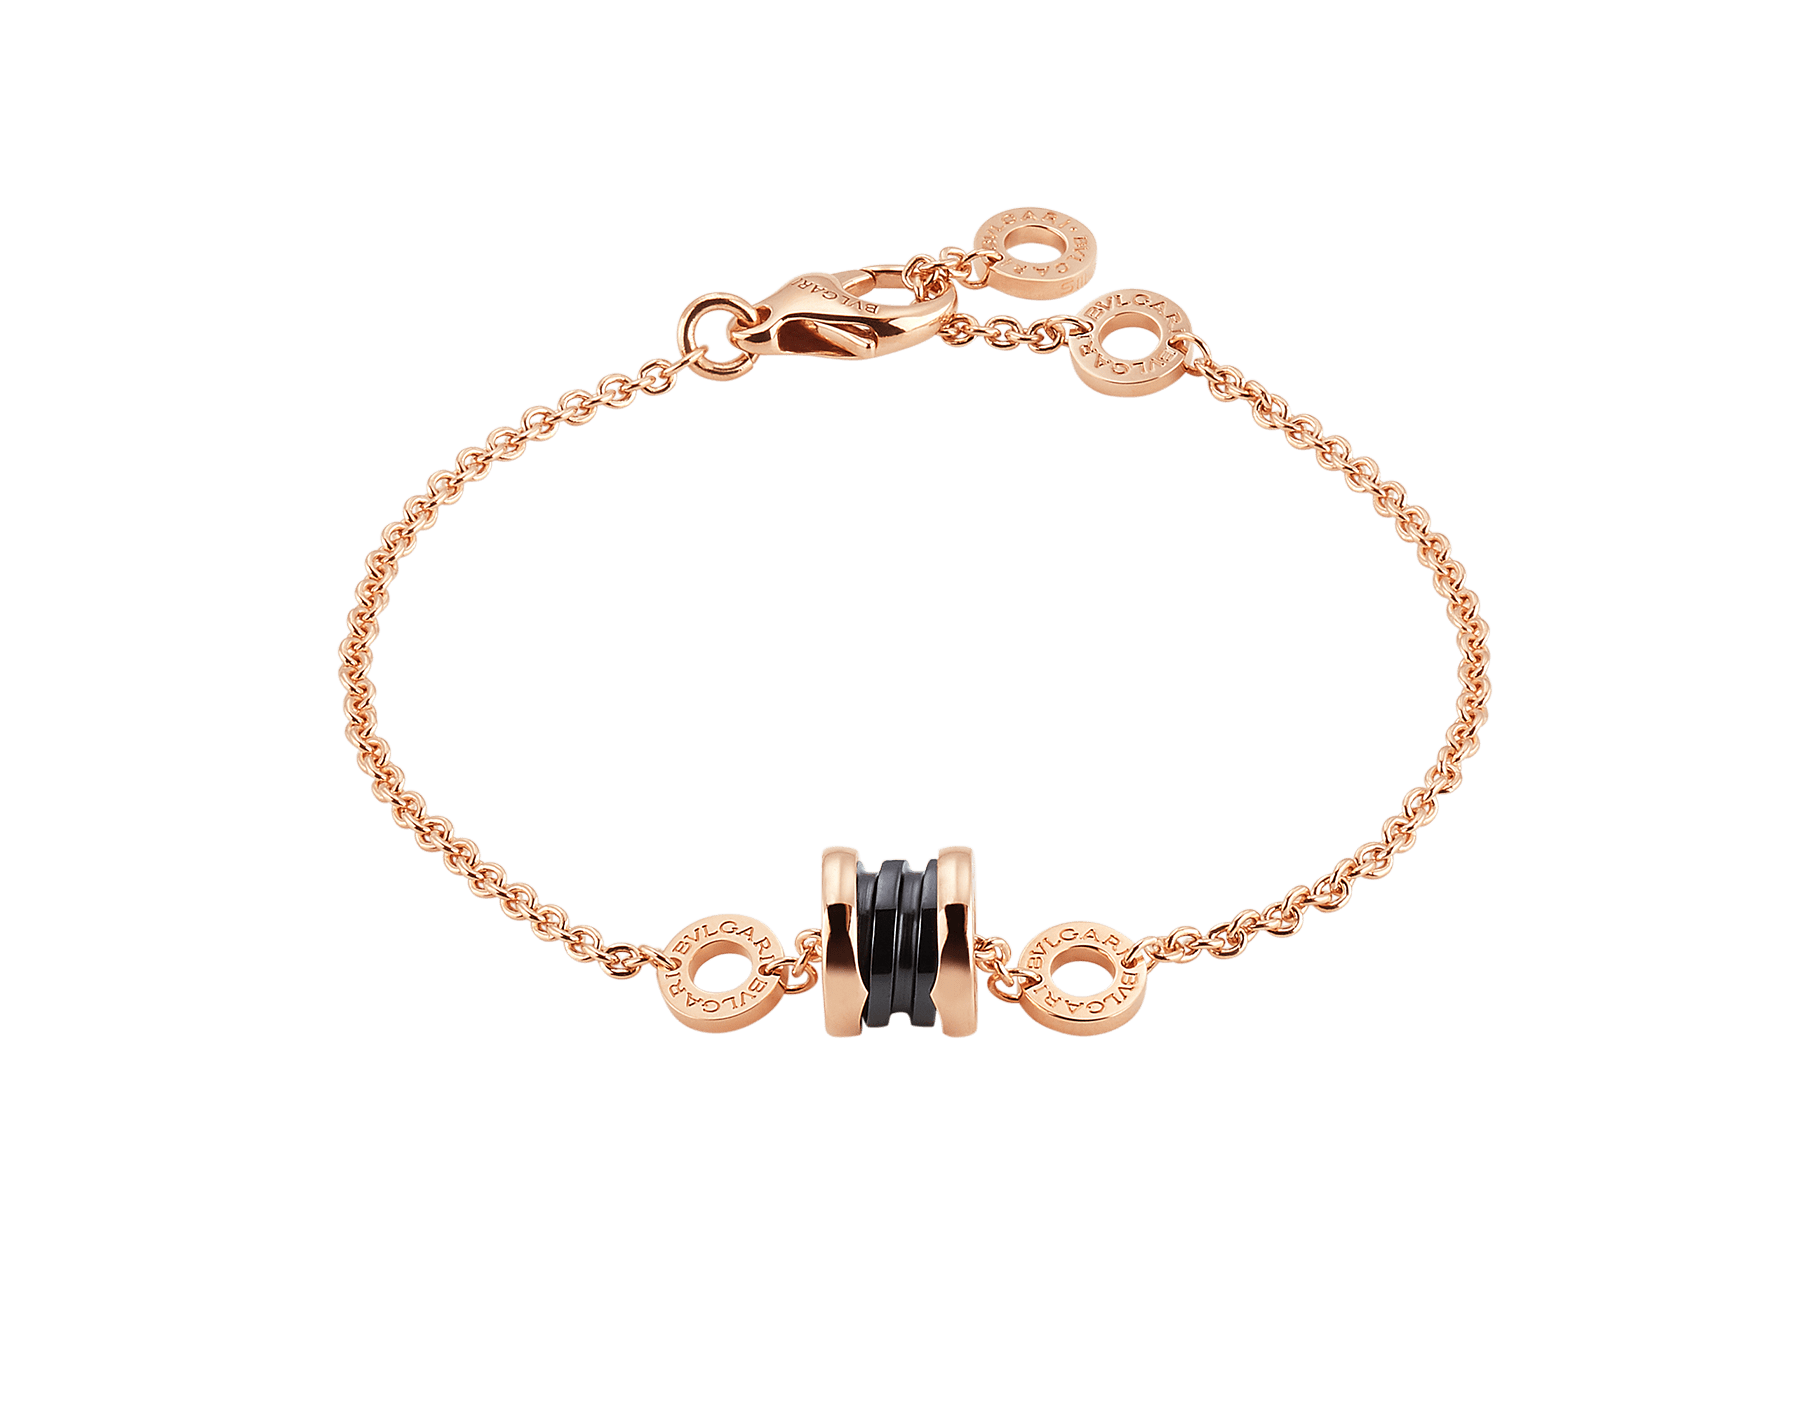 B.zero1 soft bracelet in 18 kt rose gold with 18 kt rose gold and black ceramic pendant. BR858157 image 1